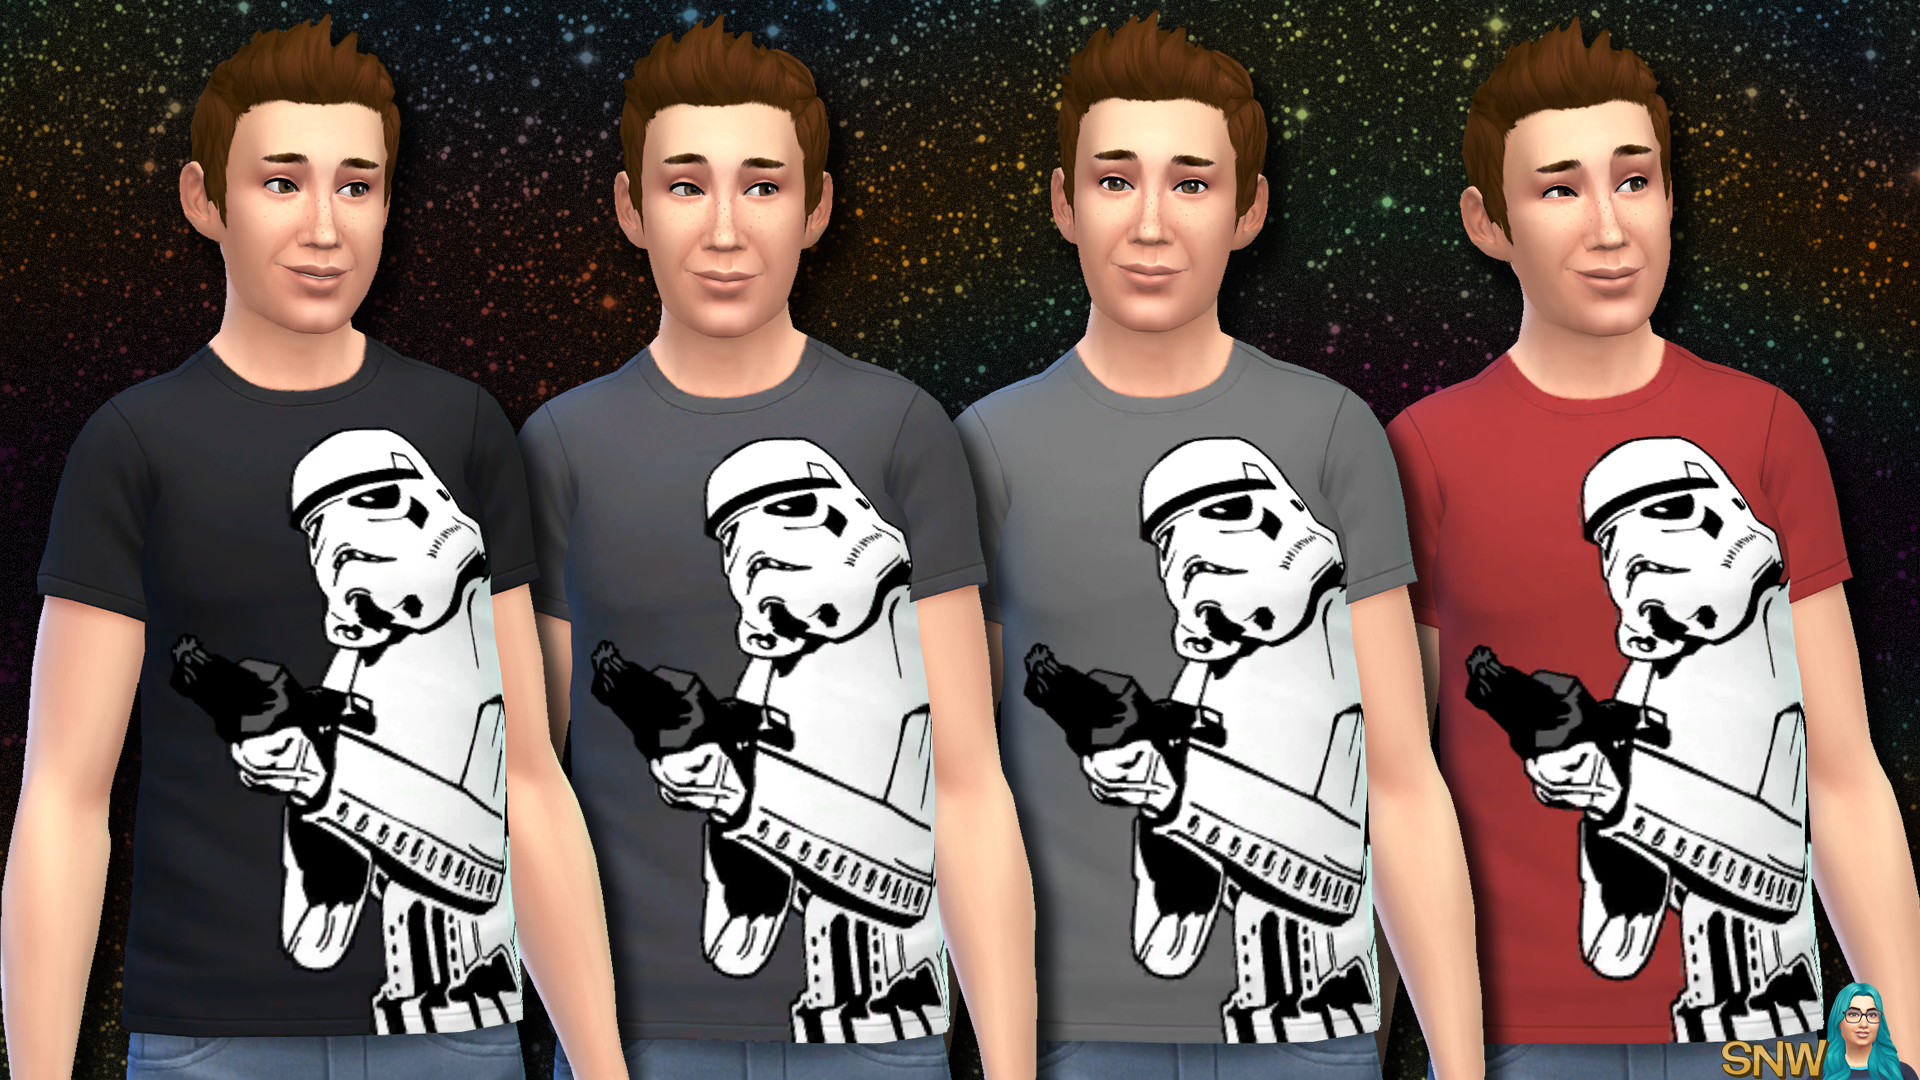 Star Wars Stormtrooper Shirts for Men